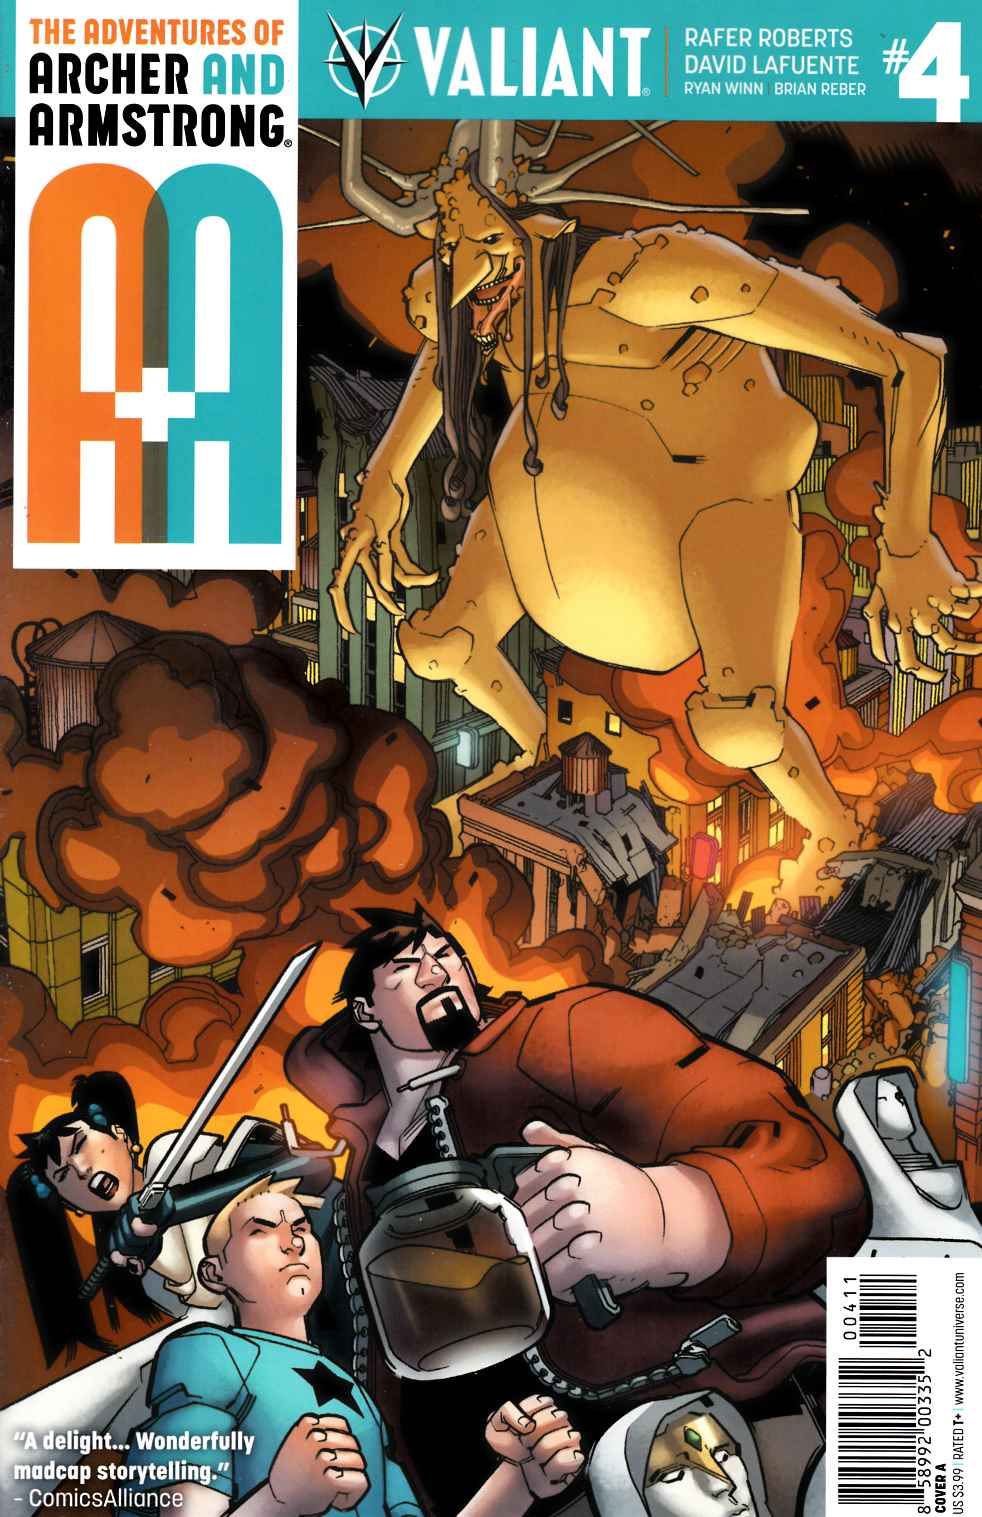 Archer & Armstrong #4 Cover A [Valiant Comic] THUMBNAIL